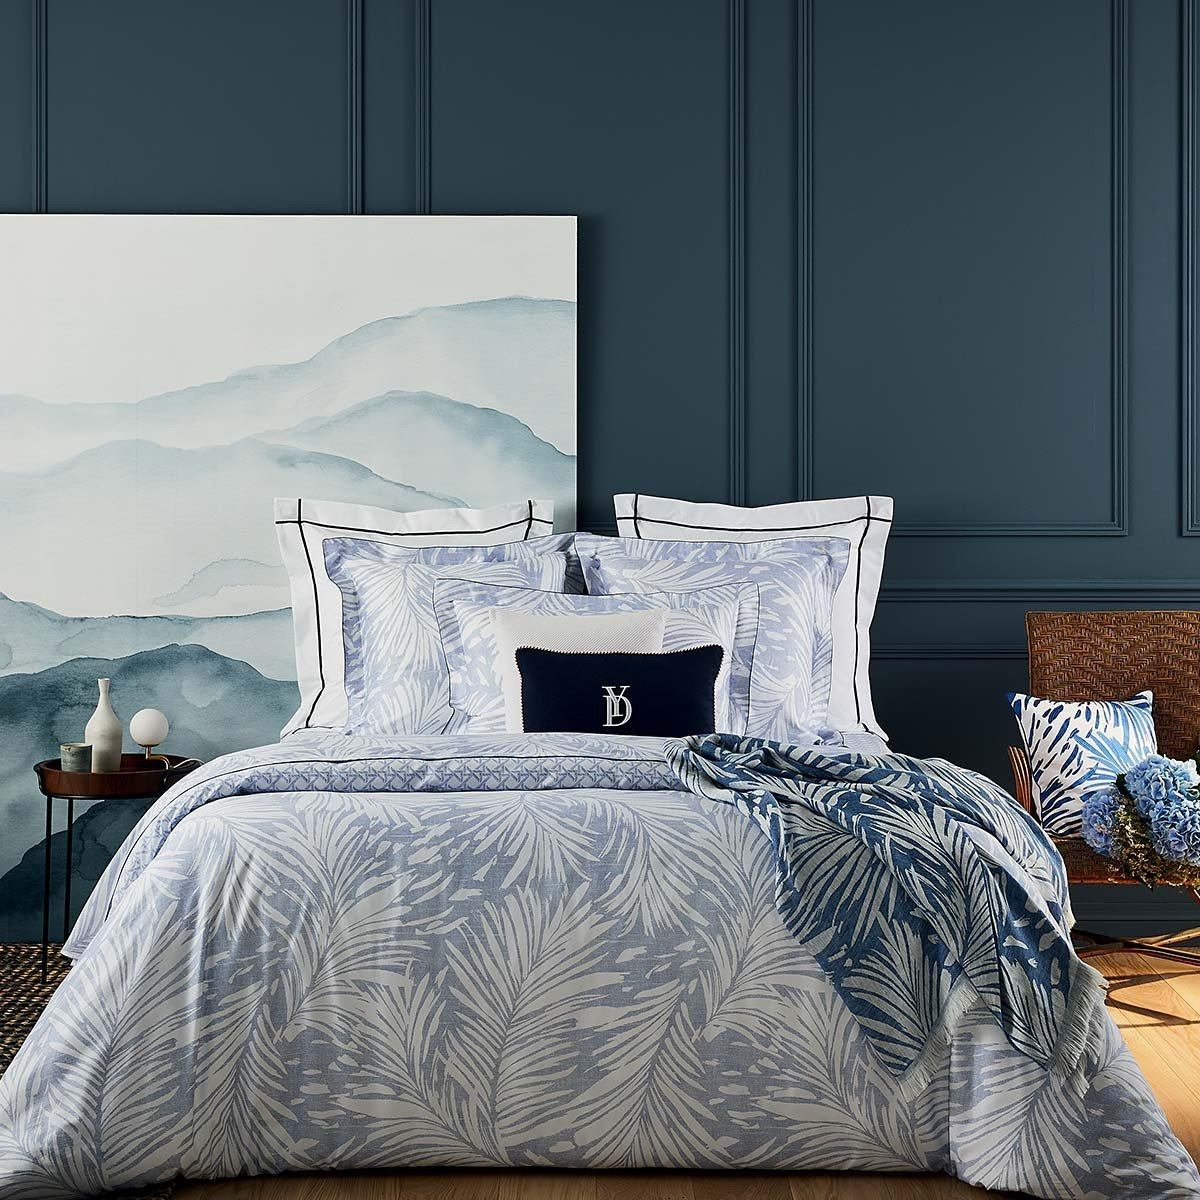 Abri Bedding by Yves Delorme